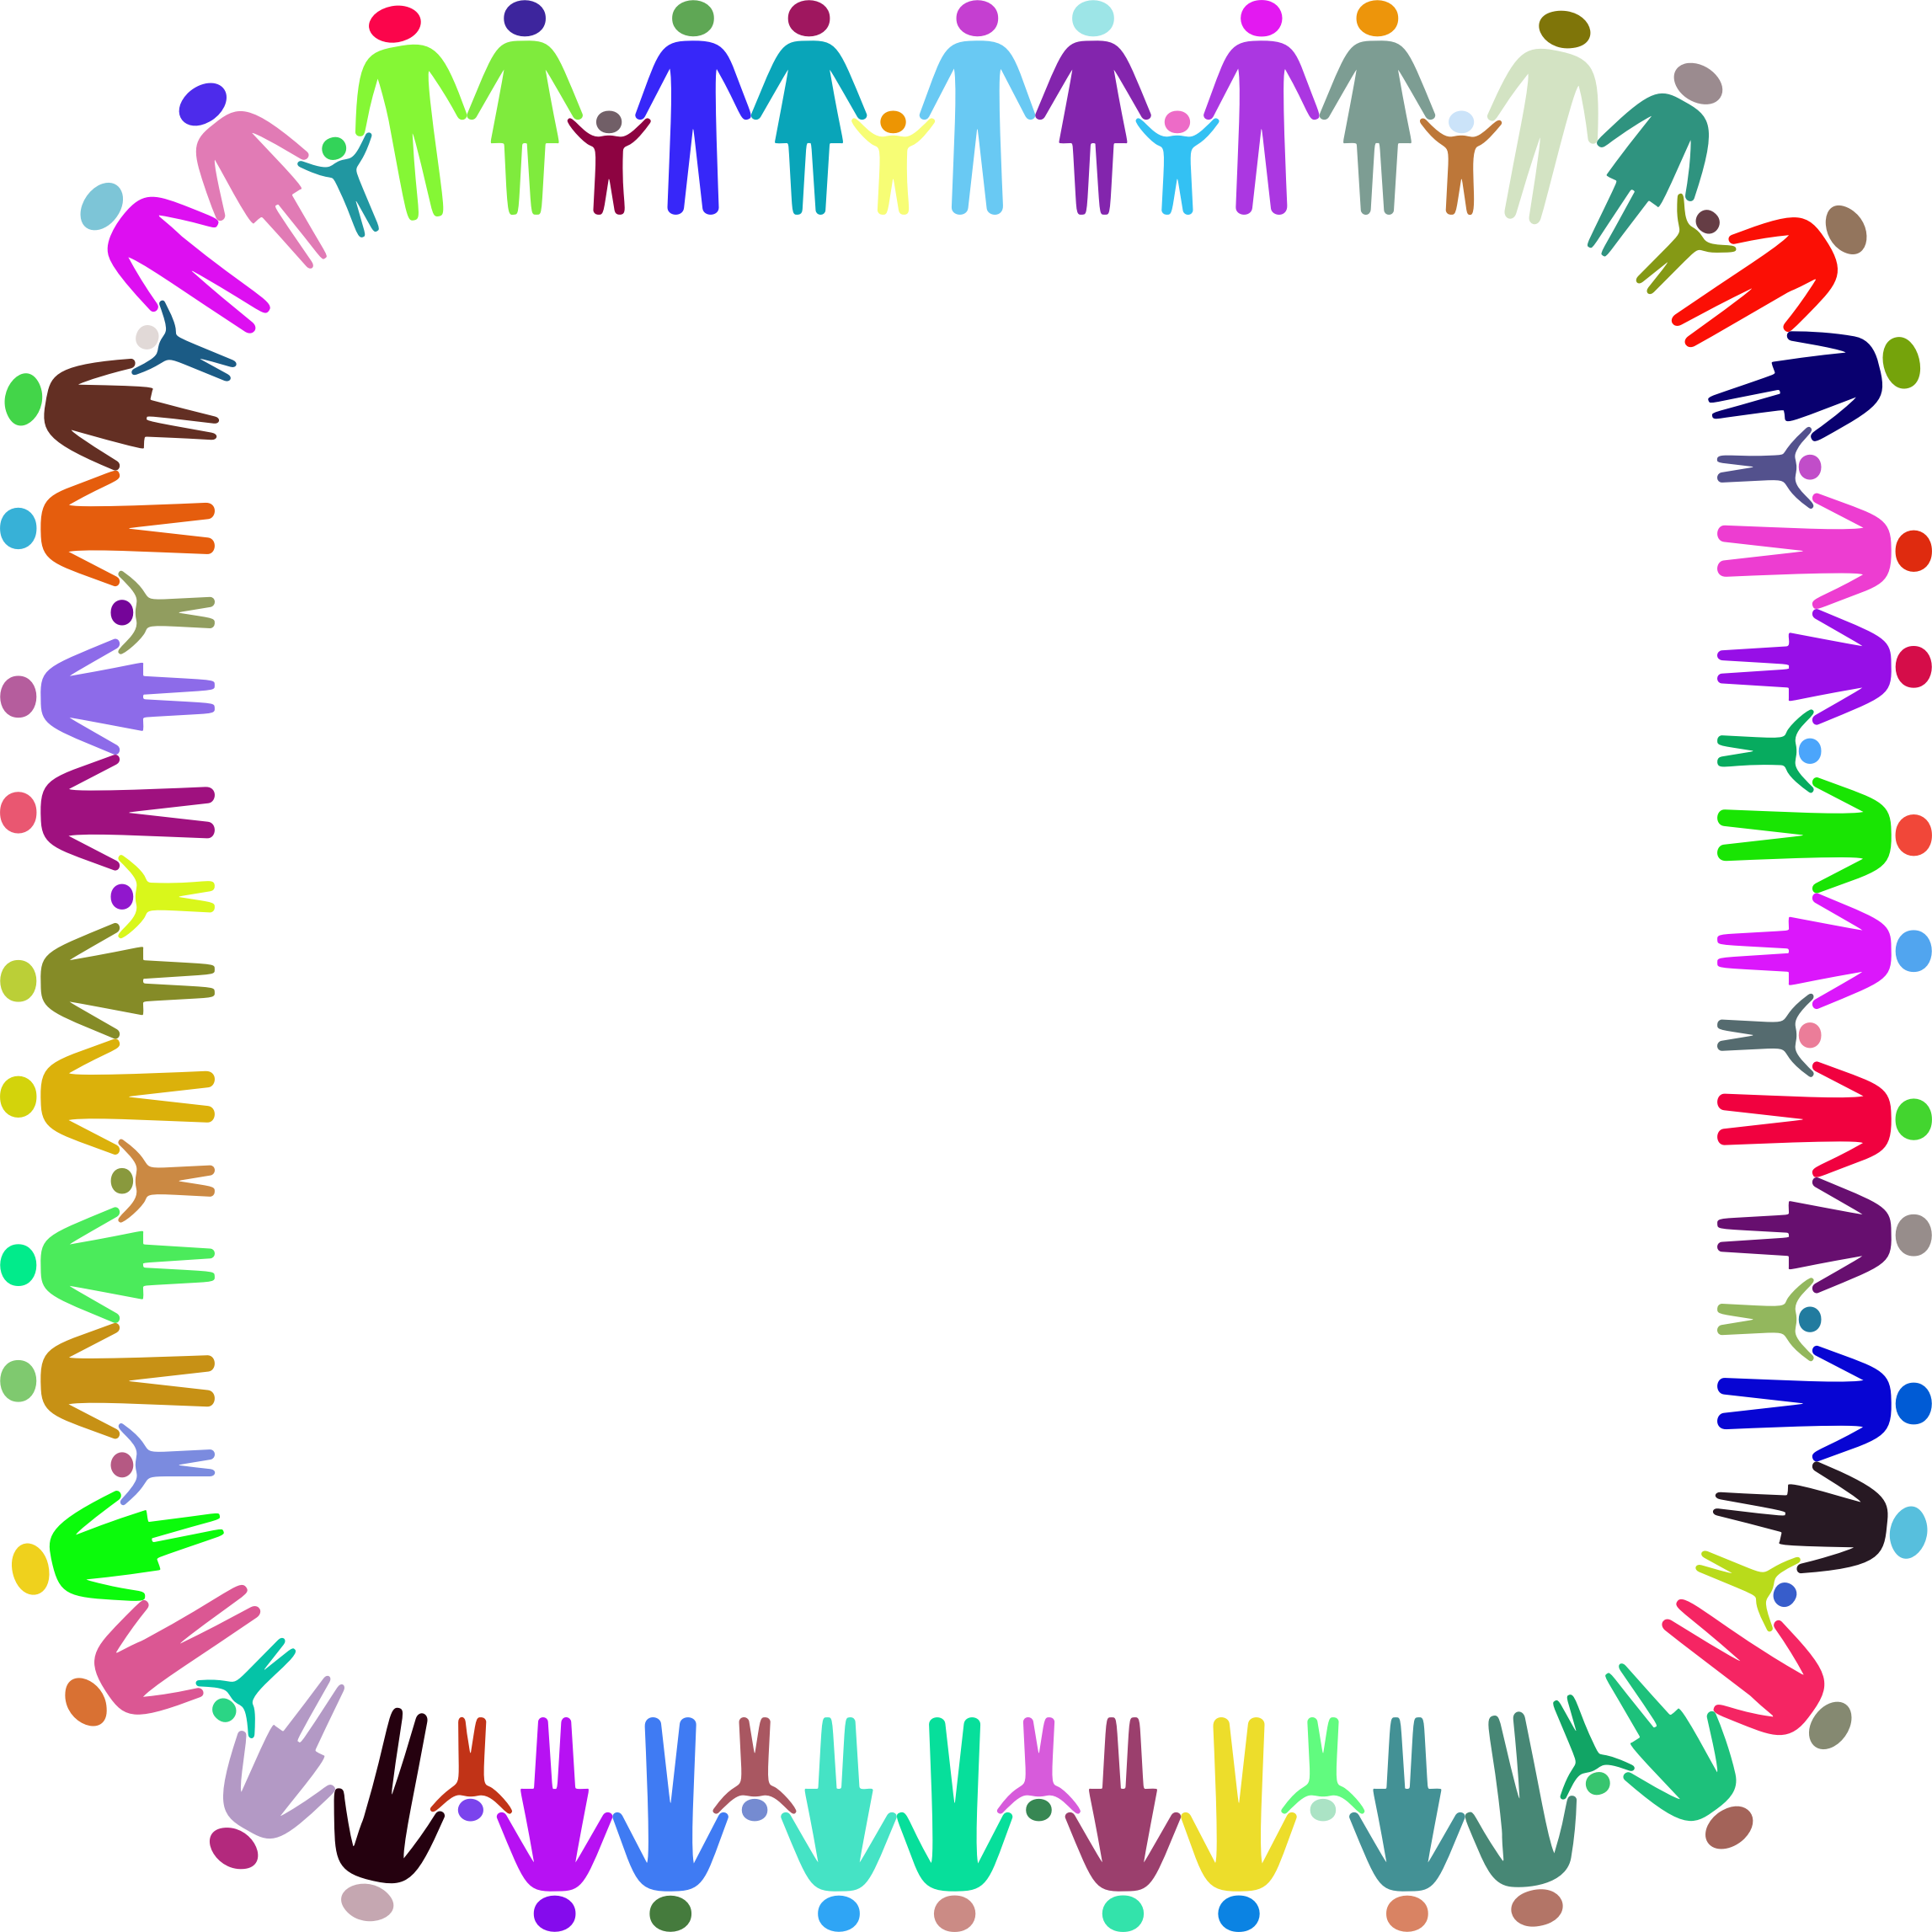 Family clipart frame. Holding hands square prismatic